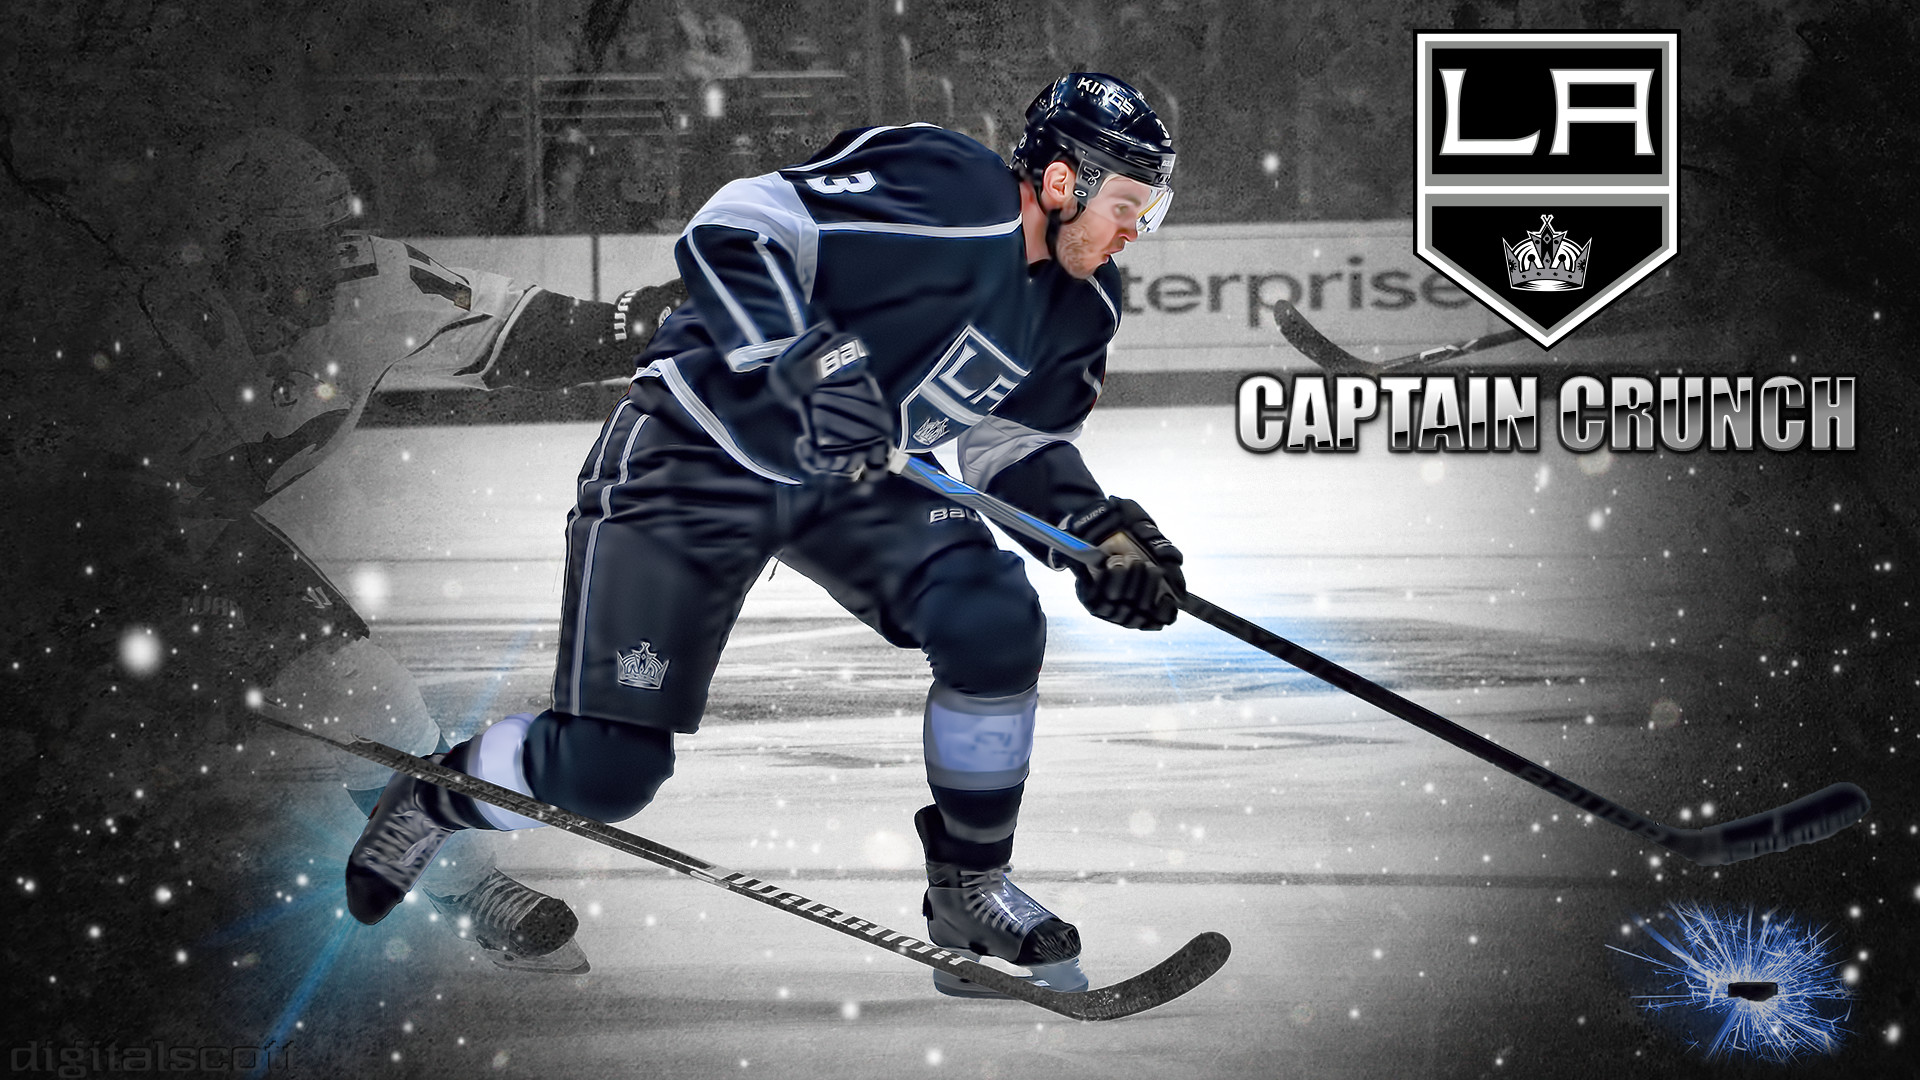 1920x1080 Dustin Brown Los Angeles Kings Wallpaper Captain Crunch